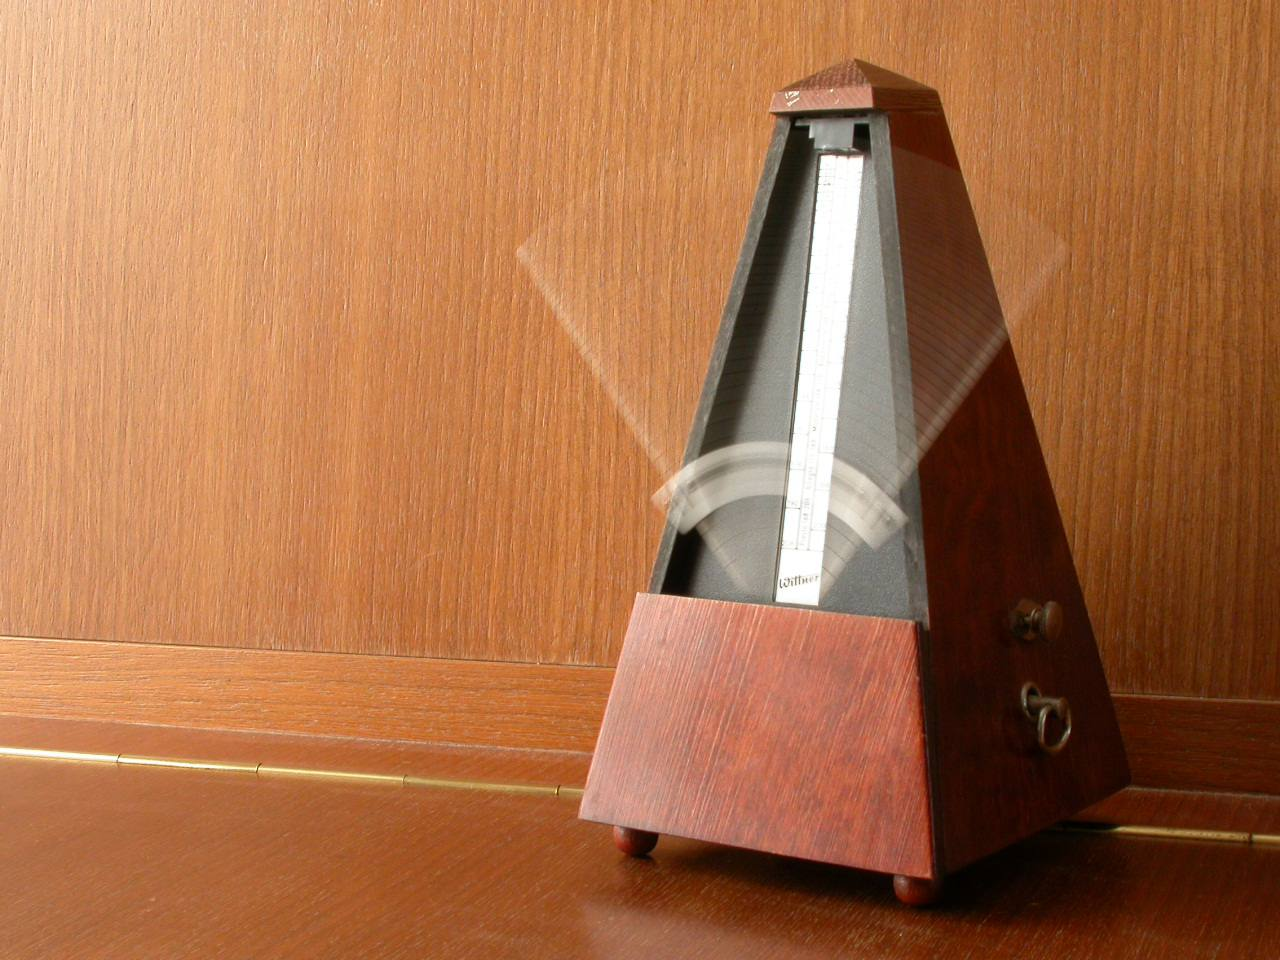 A Wittner mechanical wind-up metronome